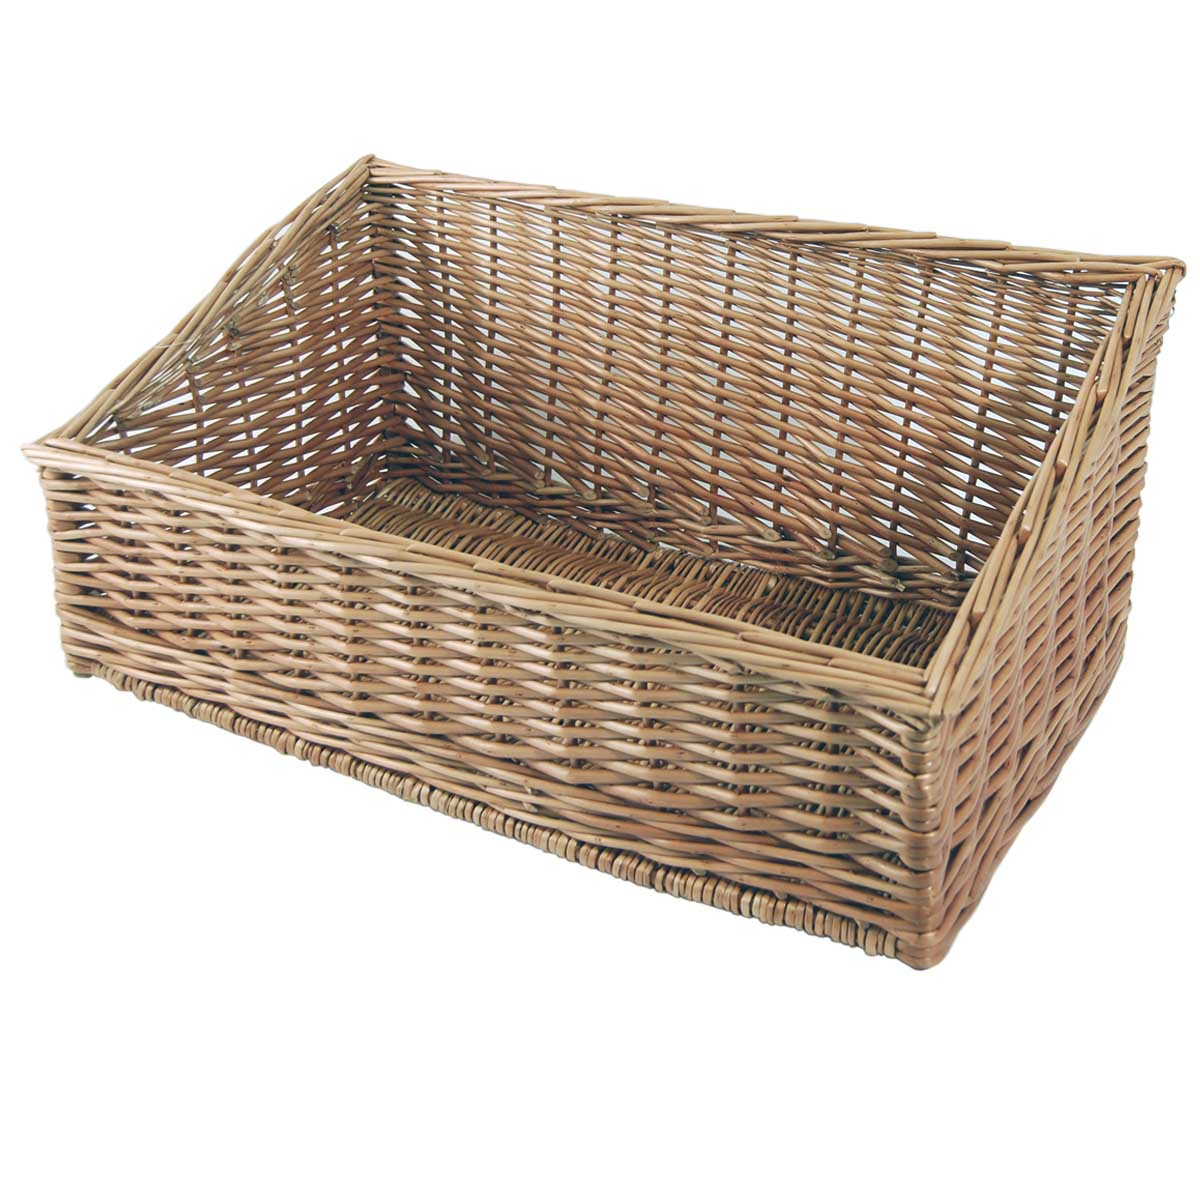 Picture of: Wicker Basket extra large